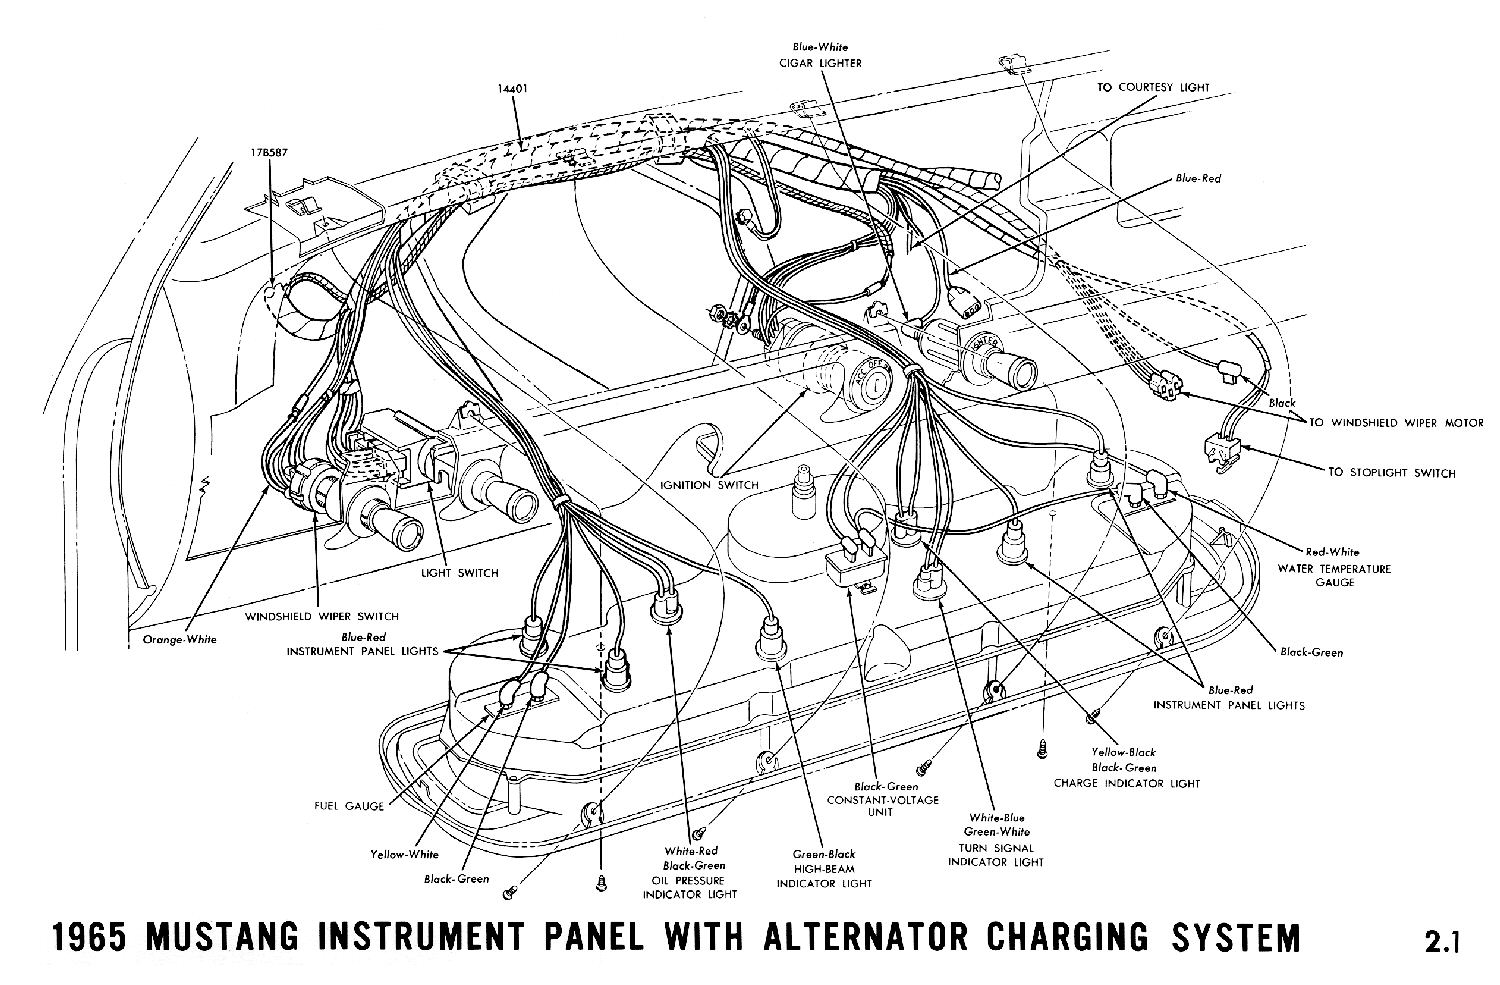 hight resolution of 1965a 1965 mustang instrument panel with alternator charging system pictorial